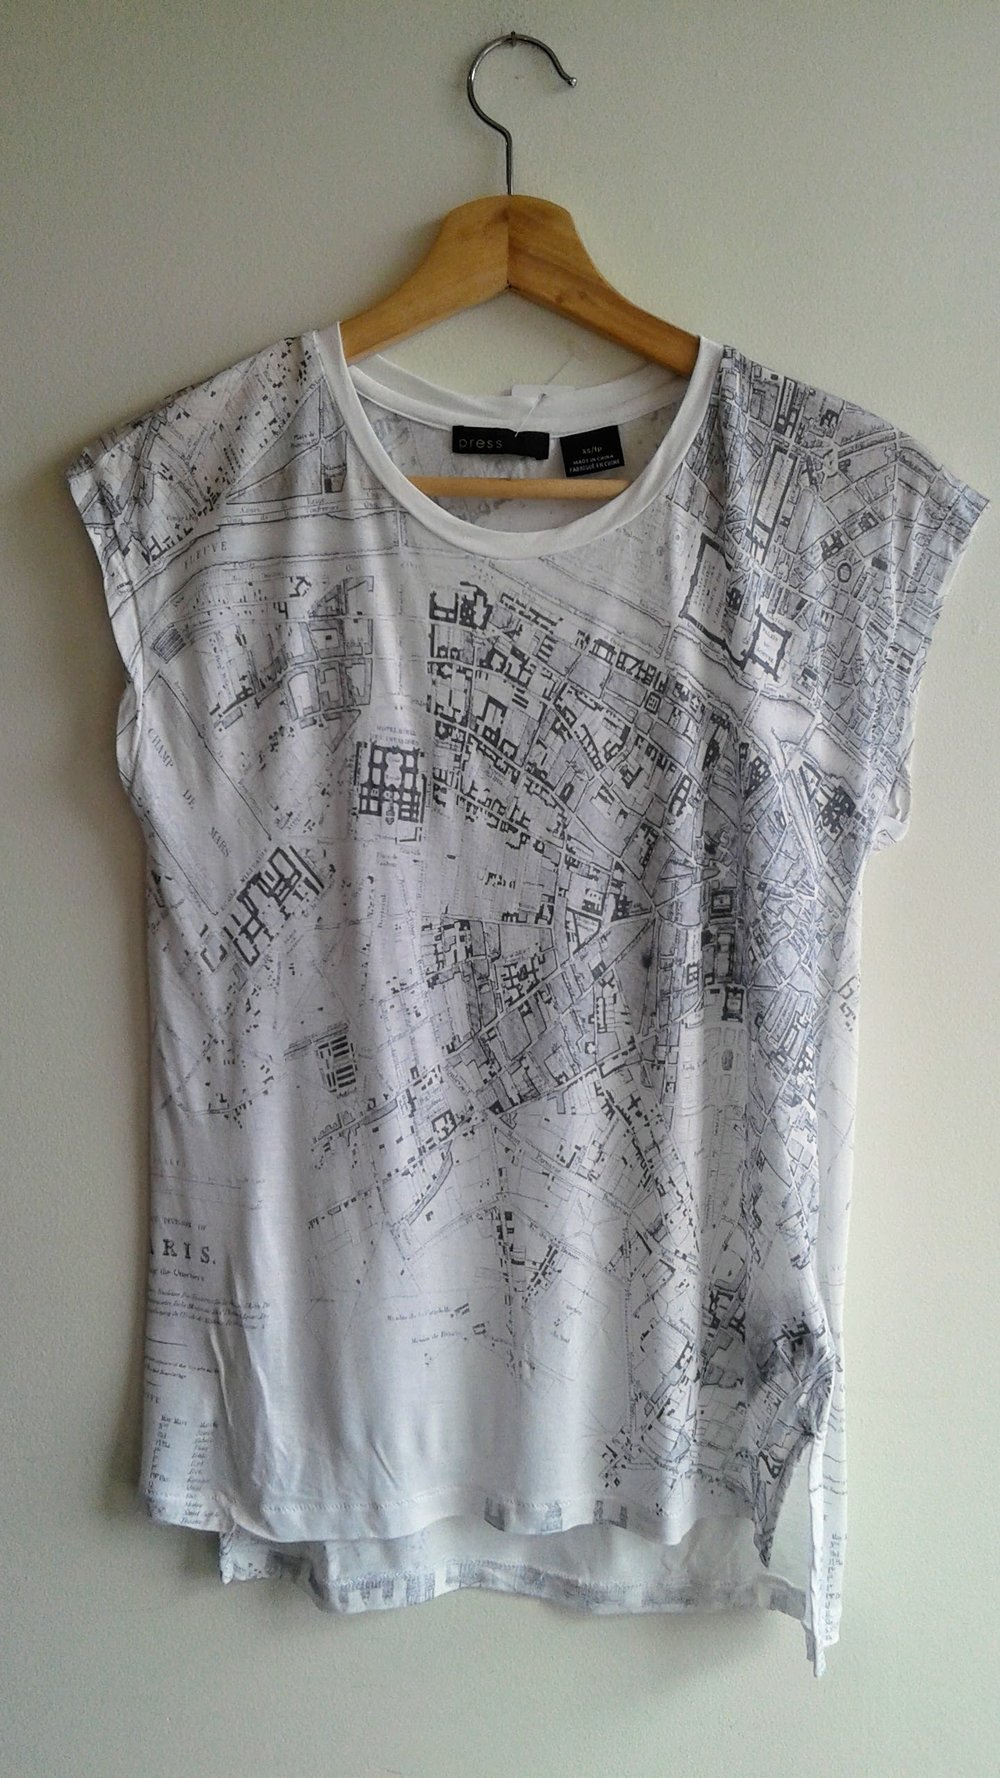 Paris T-shirt; Size XS, $20